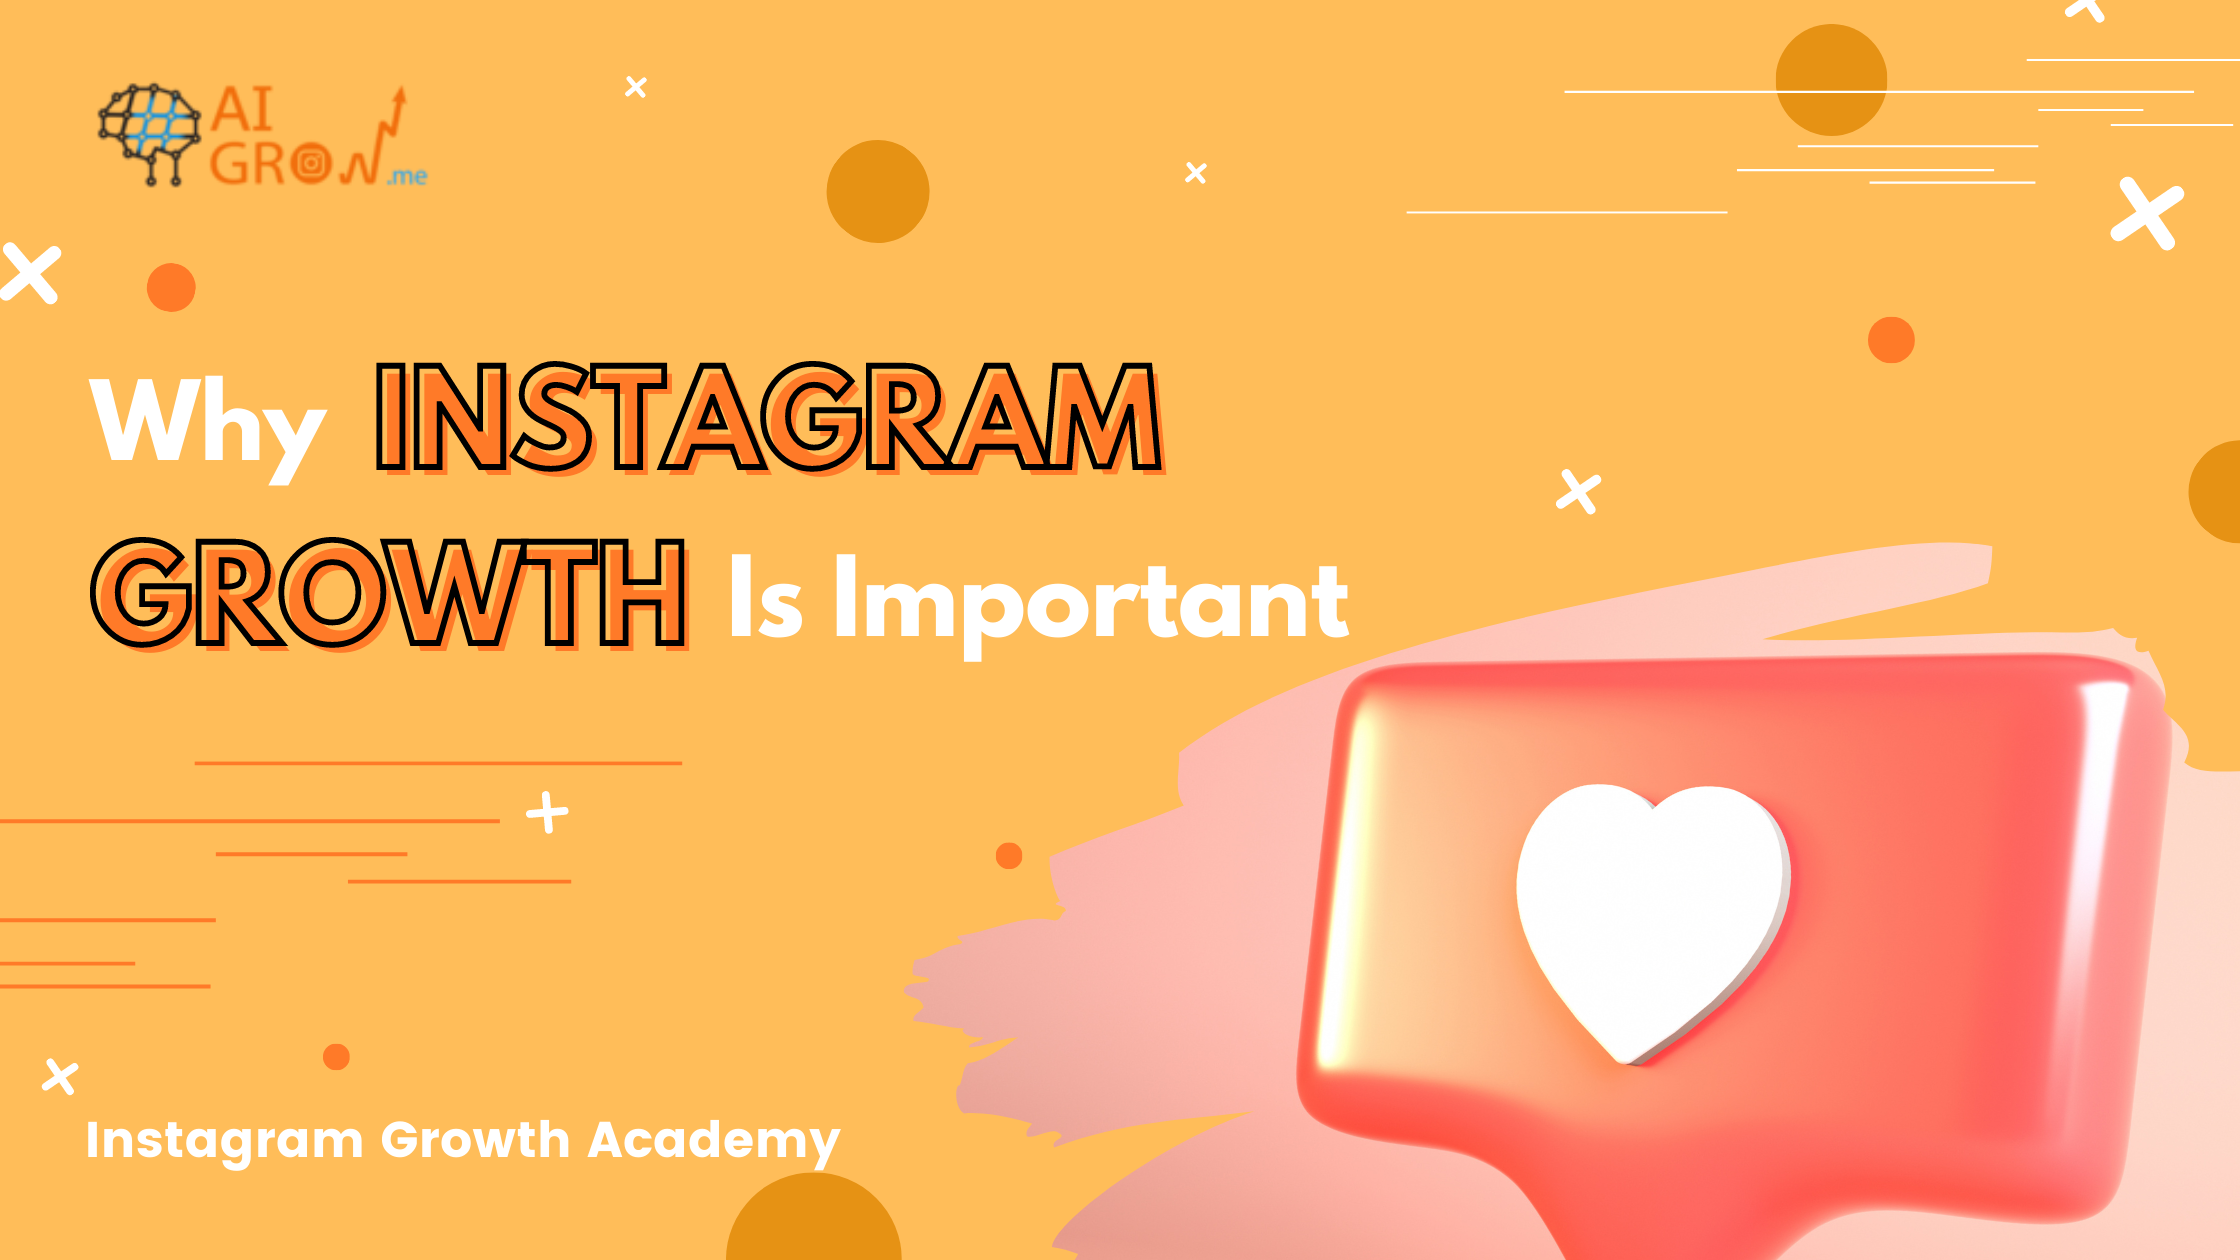 Why is Instagram Growth Important?